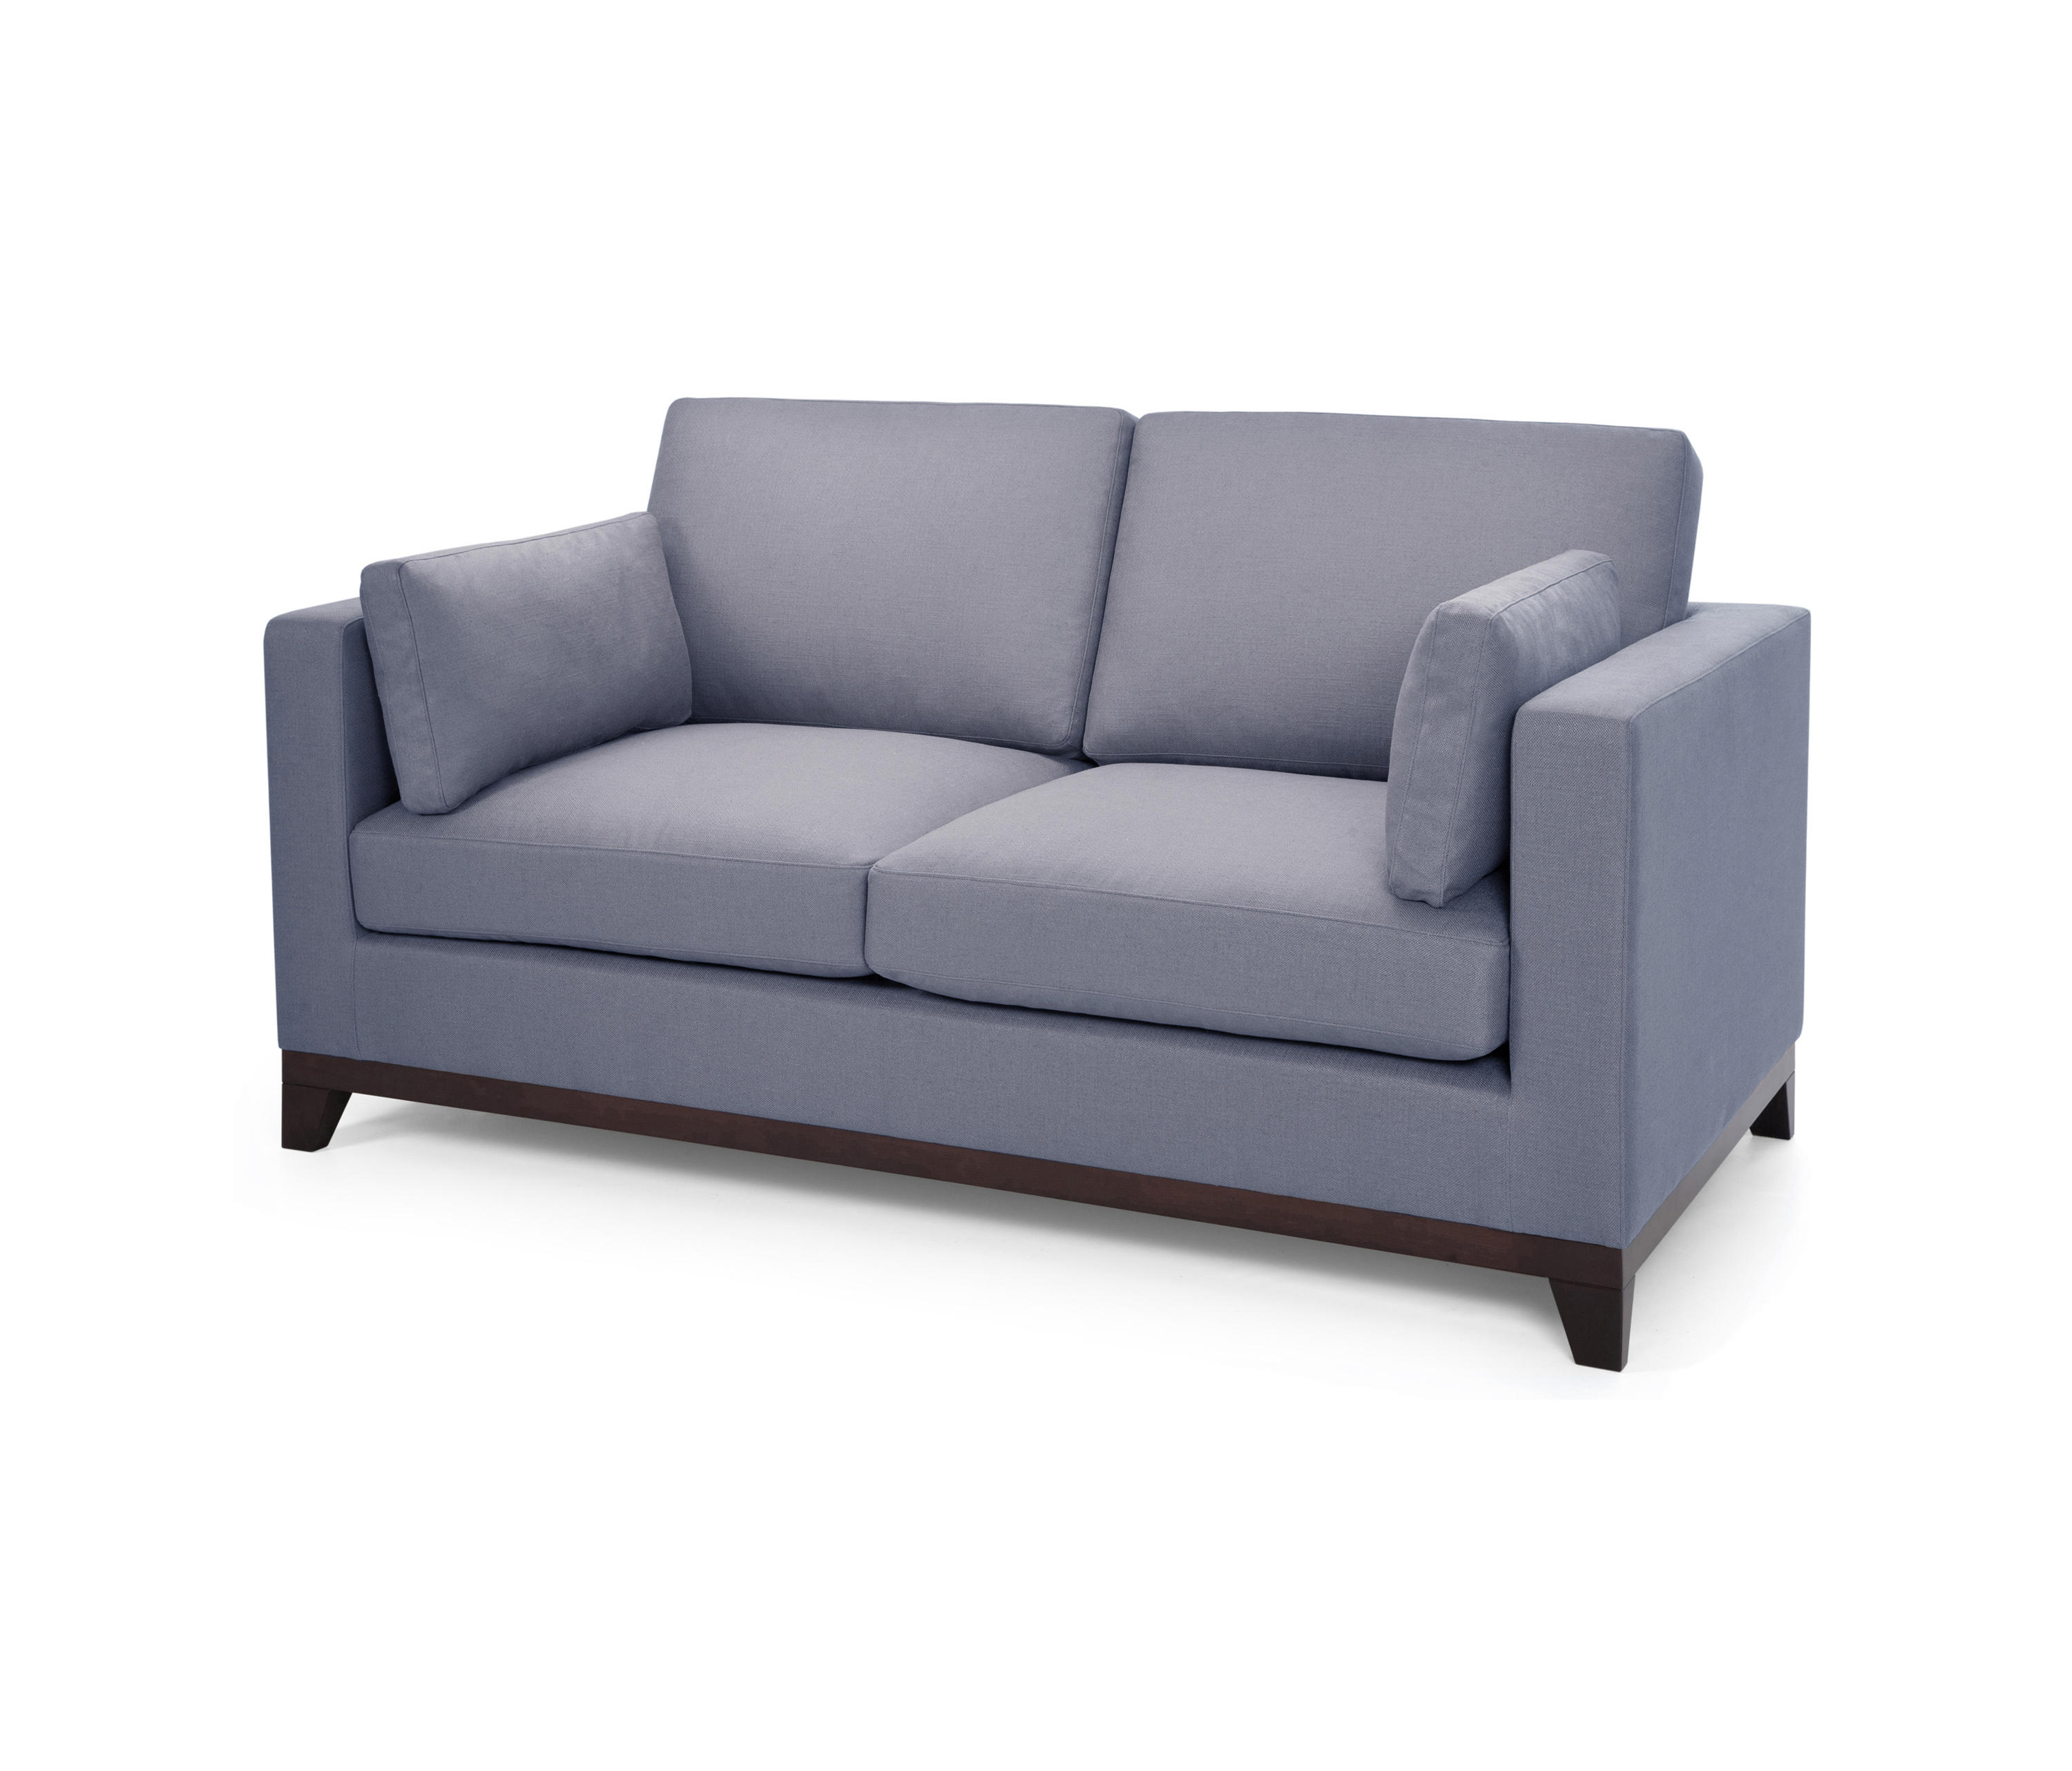 Sofas From The Sofa Chair Company Ltd